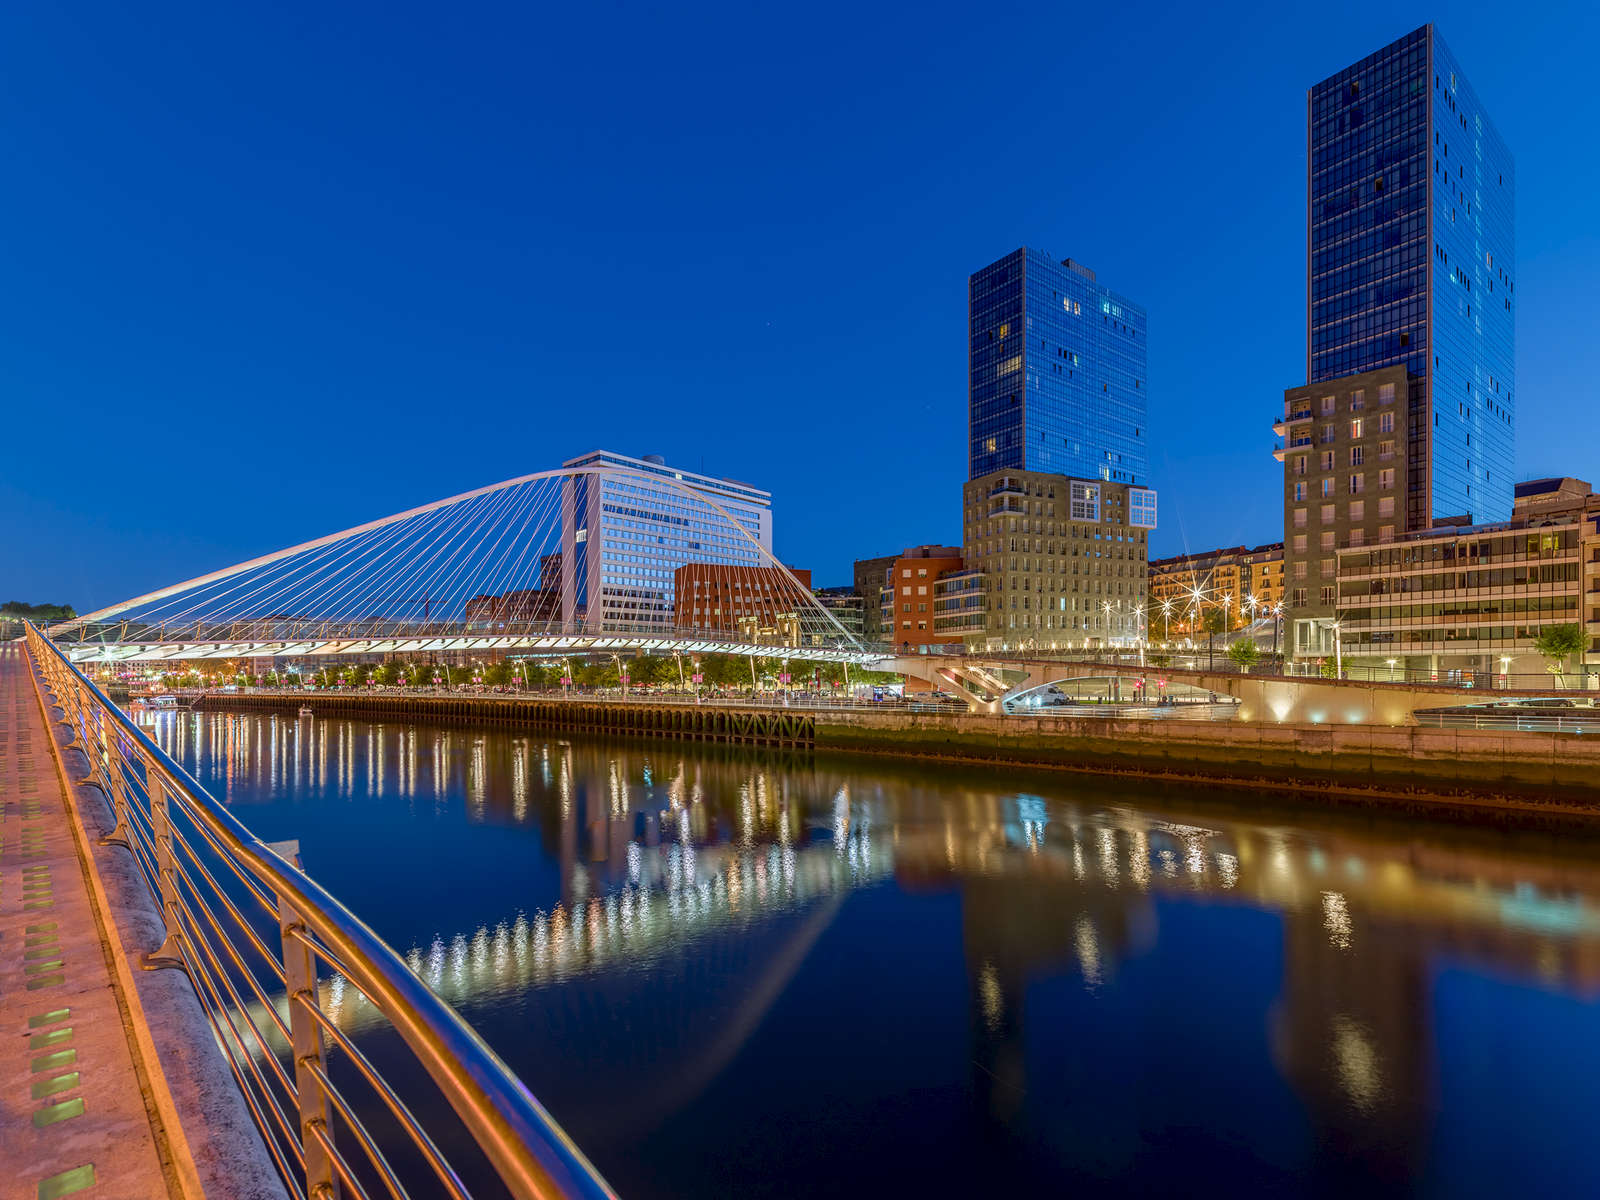 Bilbao and Nervión river. Night view